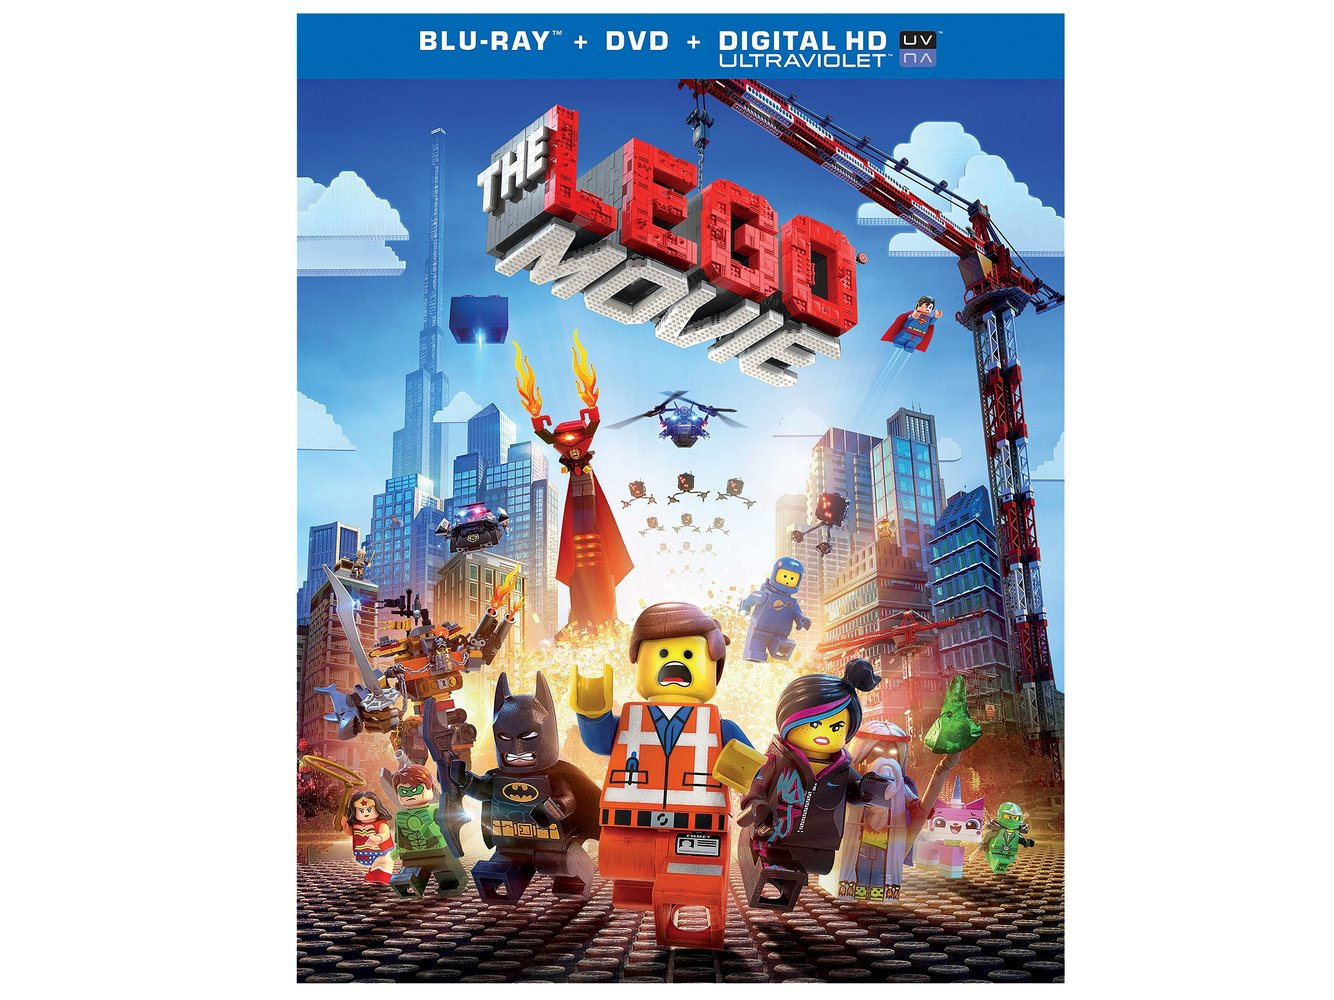 The LEGO Movie: Blu-ray Combo Pack